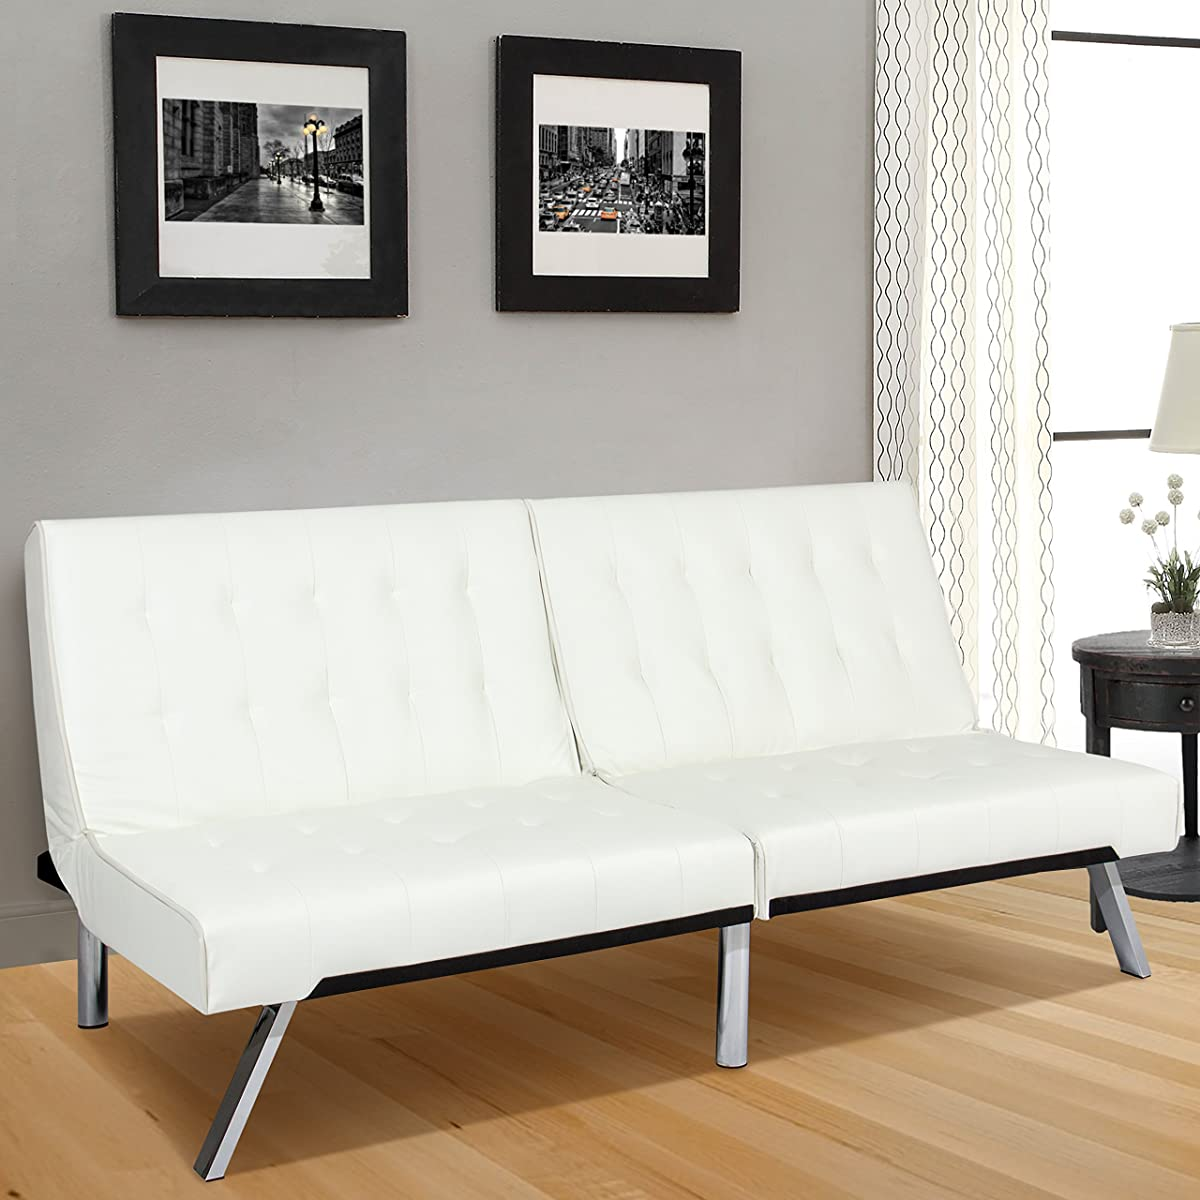 Best Choice Products Modern Leather Futon Sofa Bed Fold Up ...